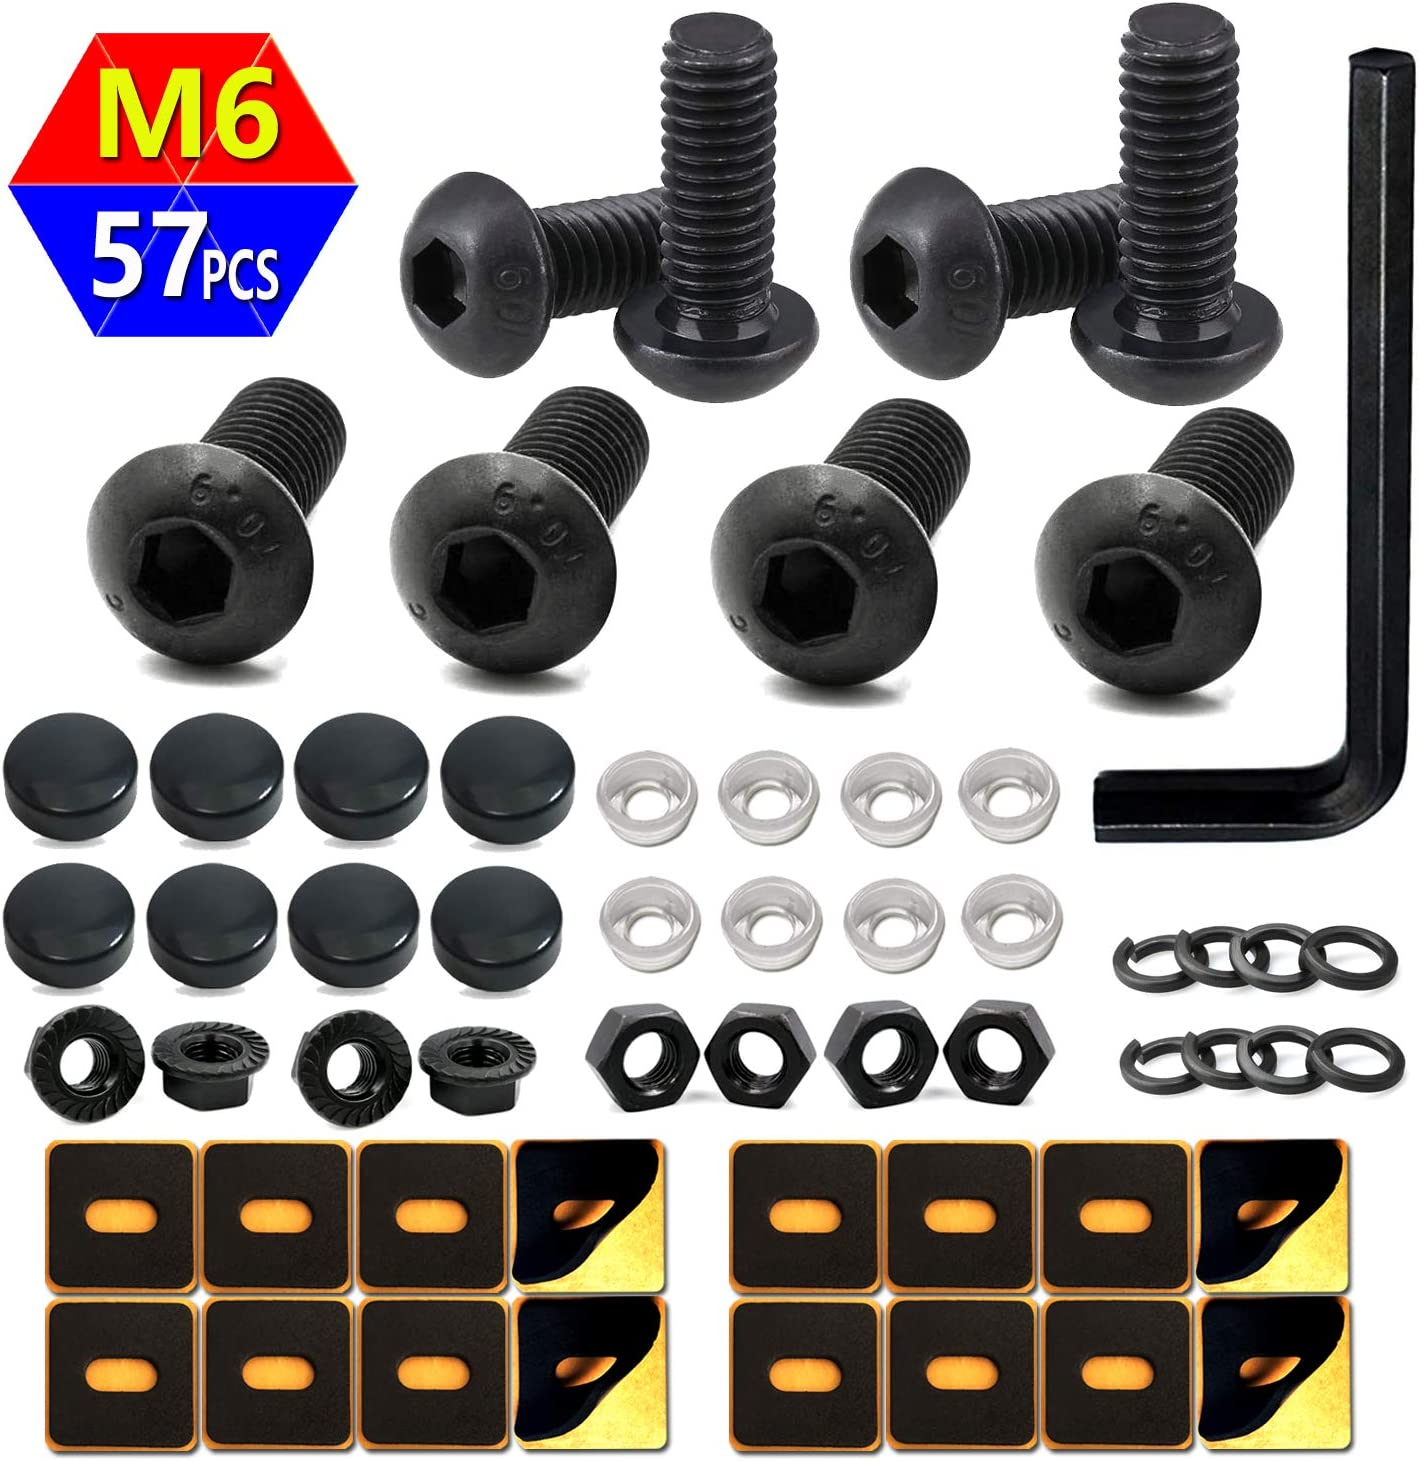 Anti-Theft *BLACK NICKEL* Security Screws for GMC FRONT /& REAR License Plate